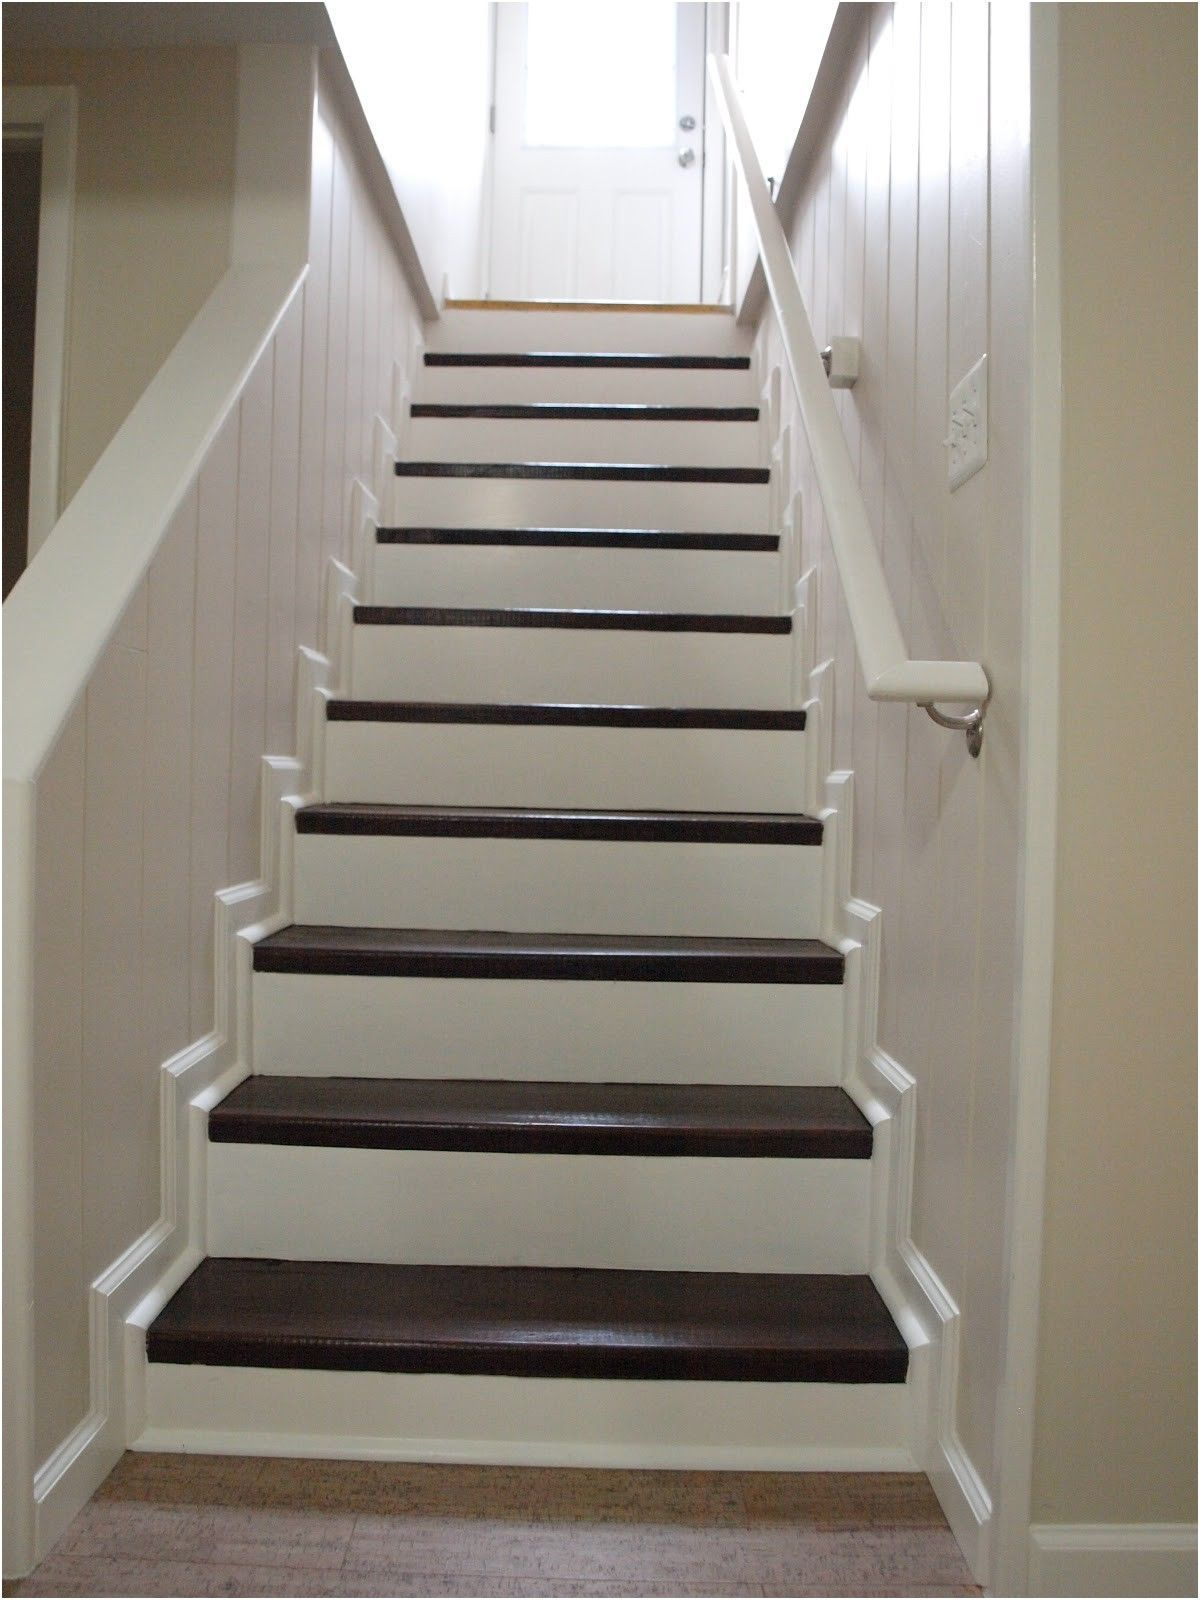 Basement Stairs Ideas: Basement Stairs Finishing Ideas